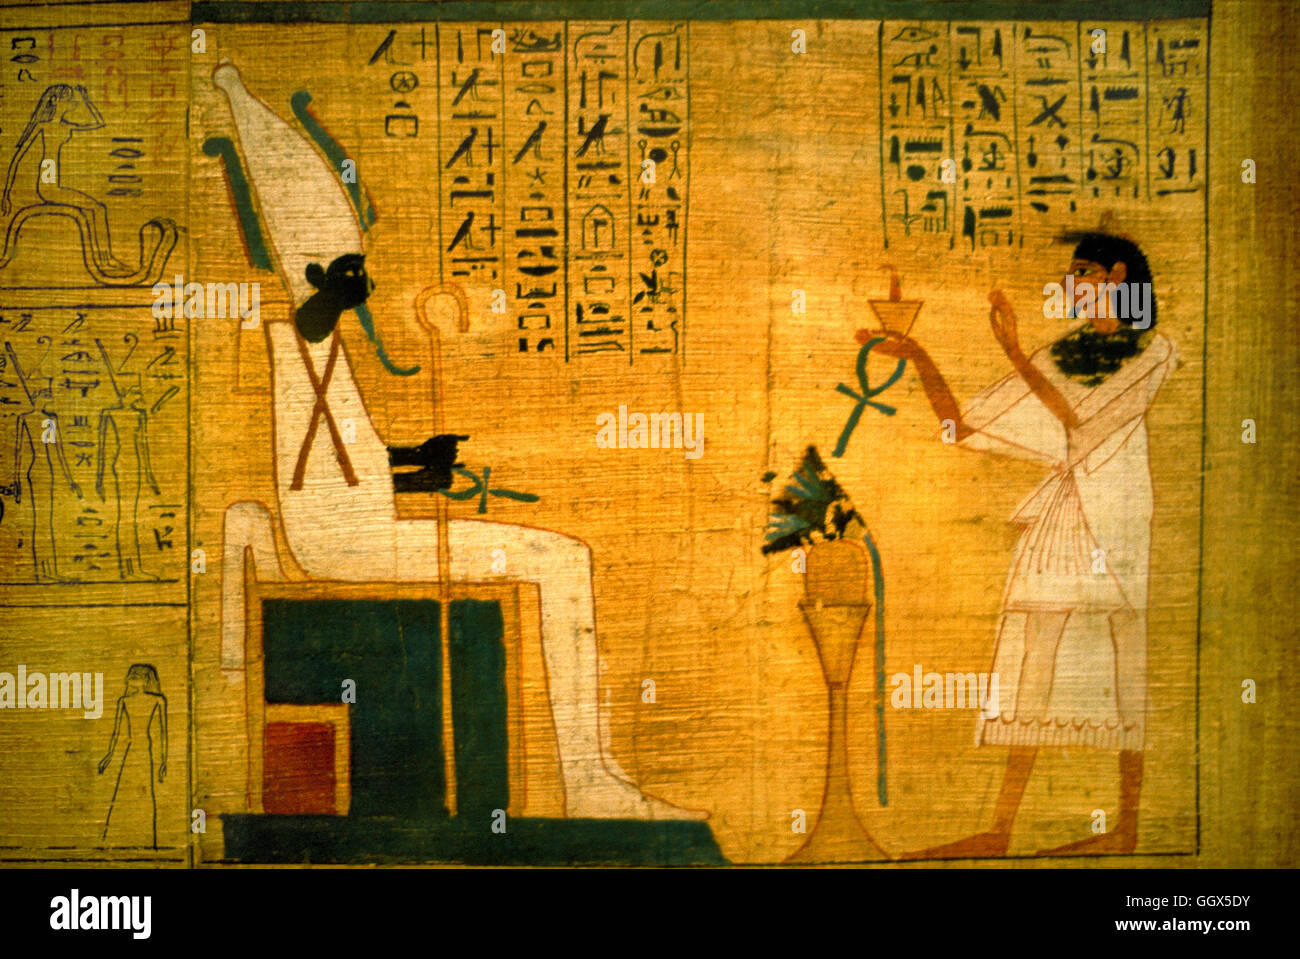 A Page From The Egyptian Book Of Dead On Papyrus Found In Tut Ankh